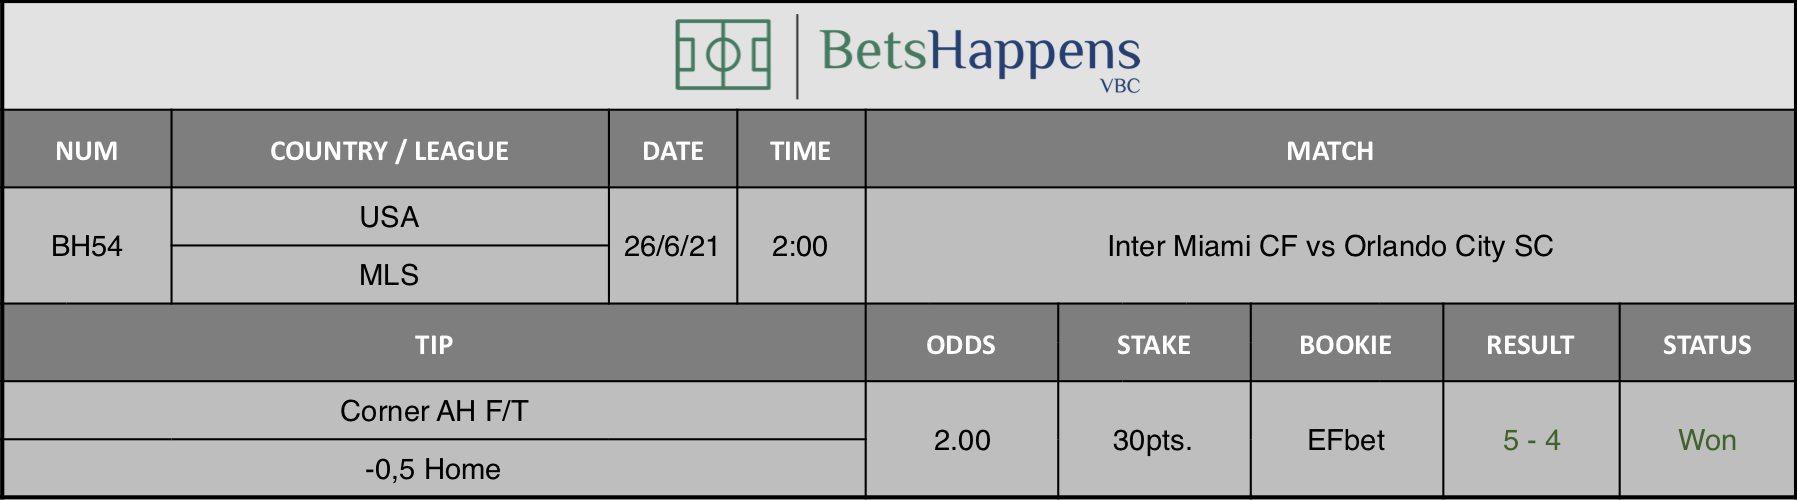 Results of our tip for the Inter Miami CF vs Orlando City SC match Corner AH F/T -0,5 Home is recommended.